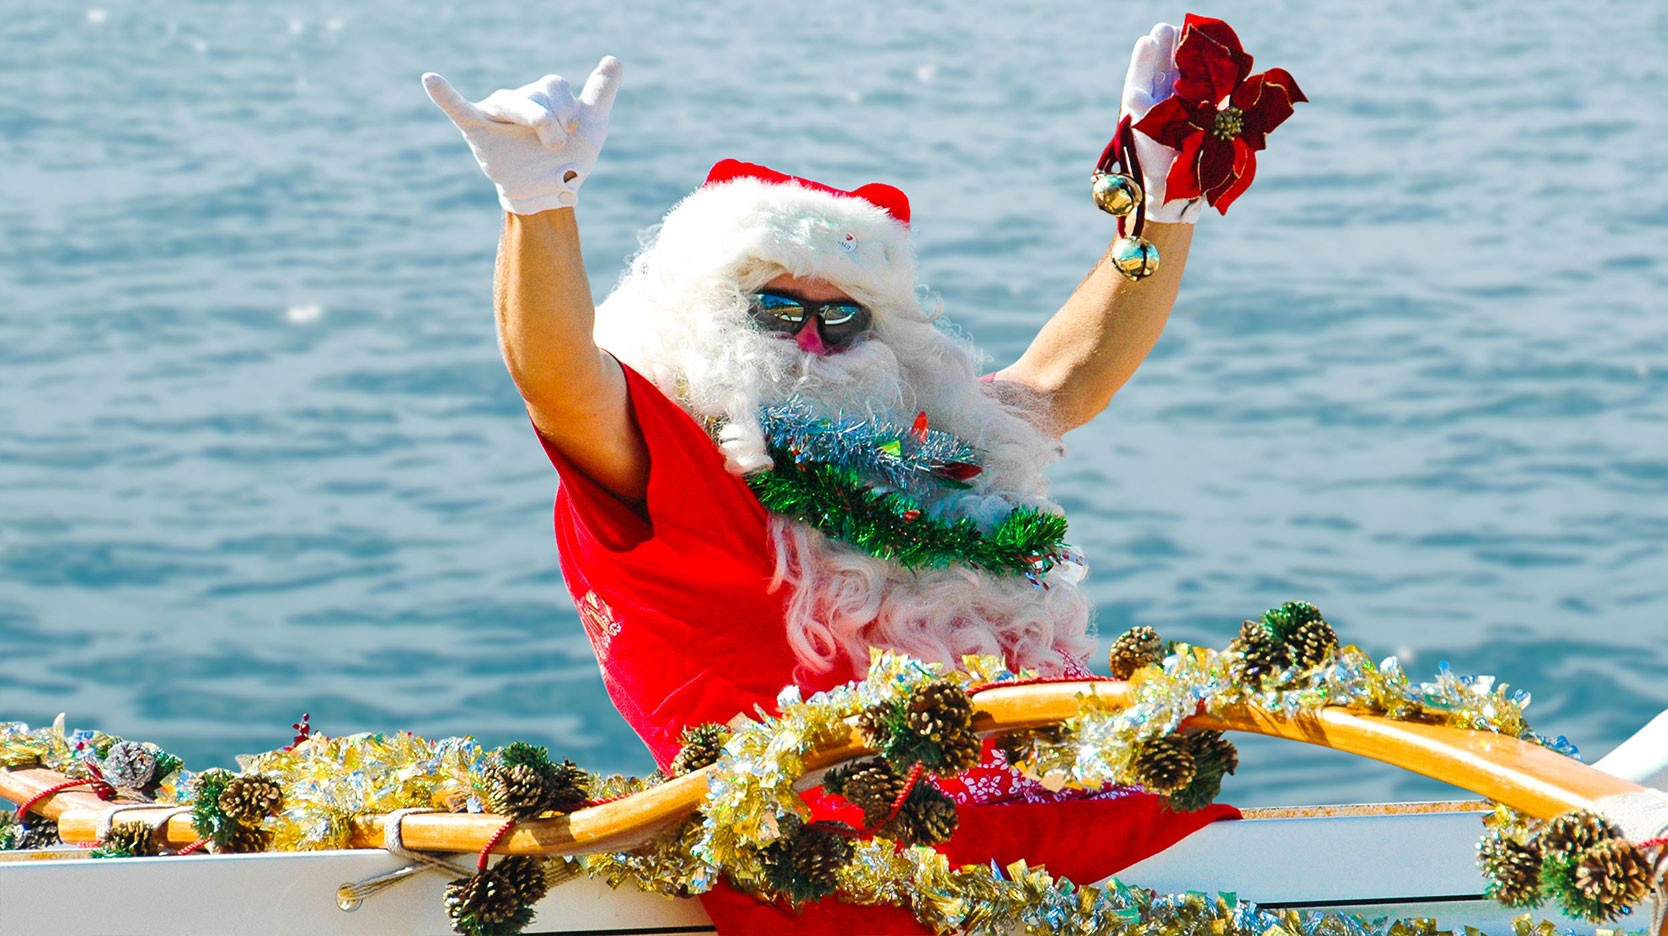 Hawaiian Santa Claus called Kanakaloka